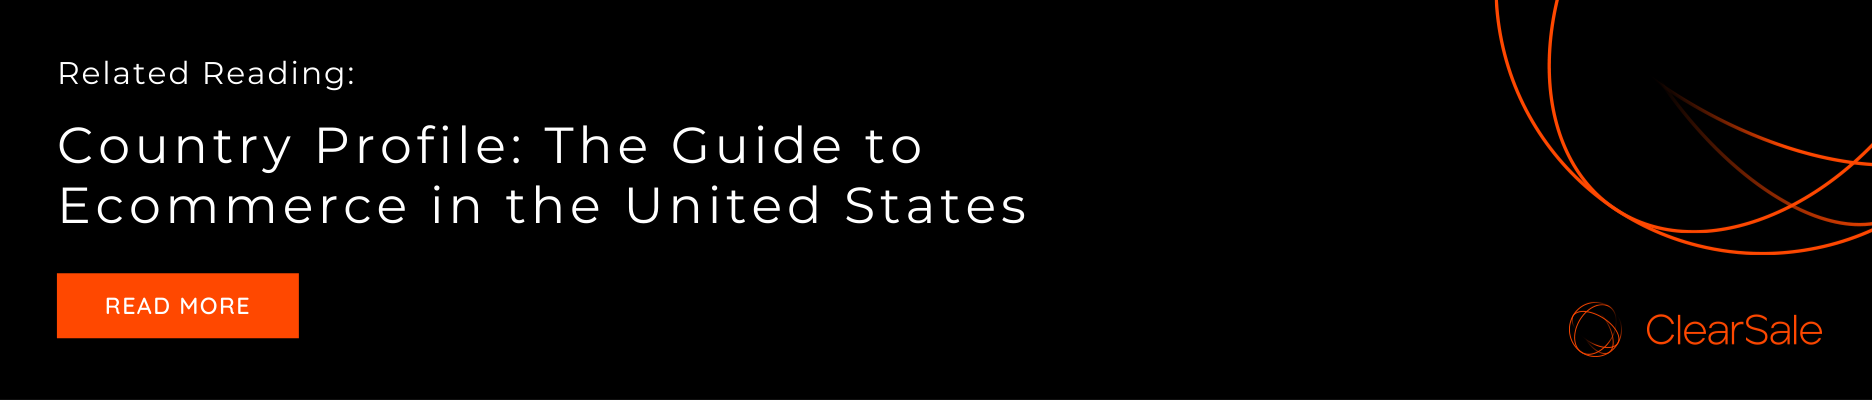 Country Profile: The Guide to Ecommerce in the United States